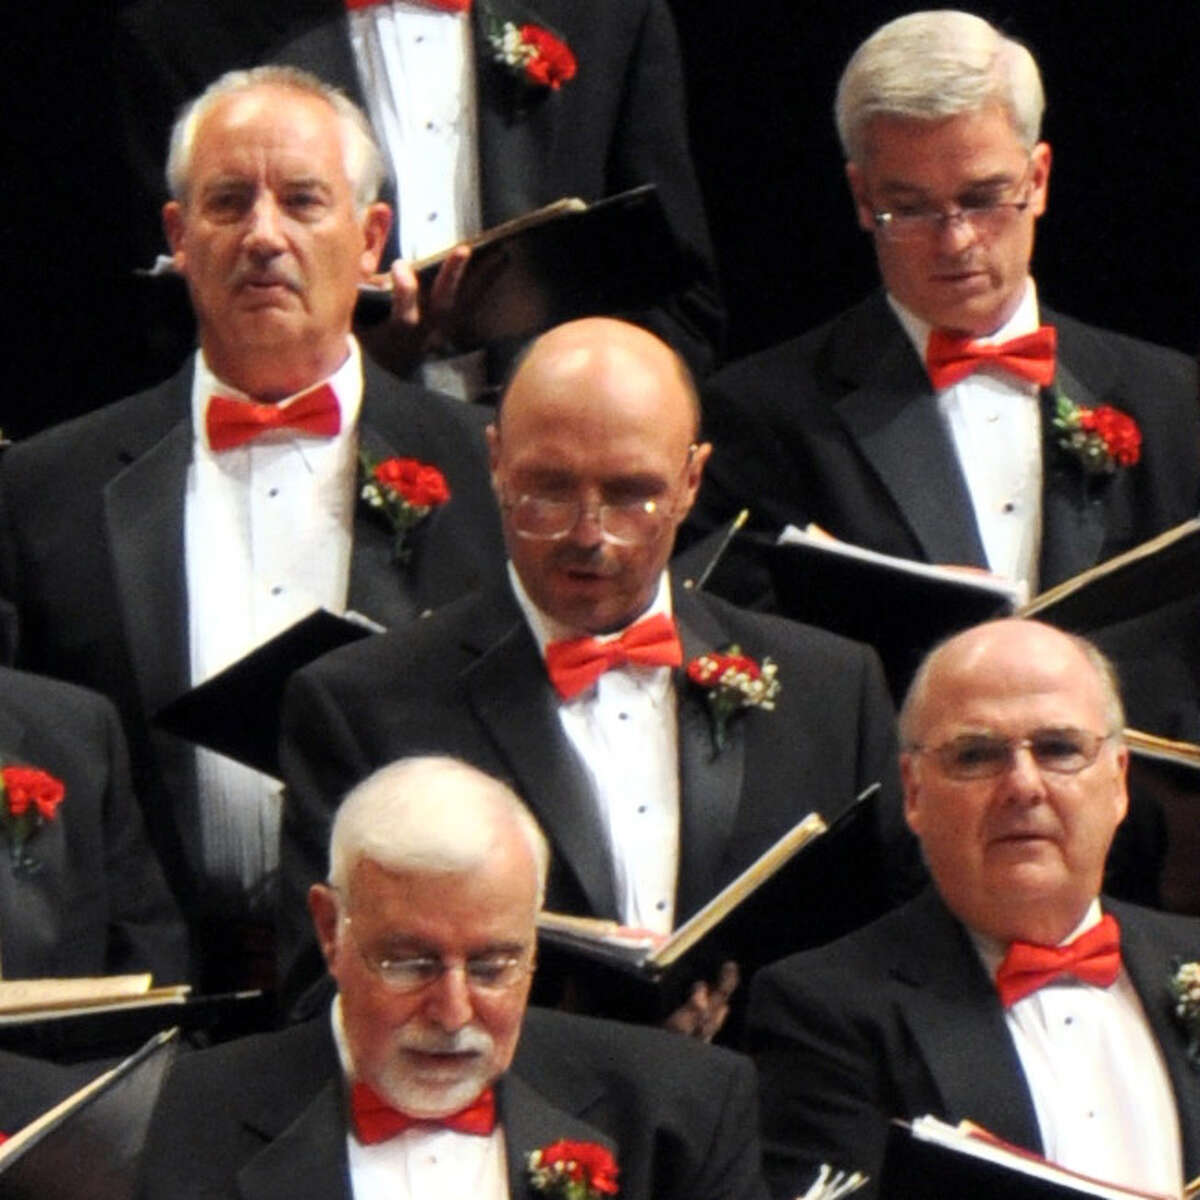 Gary Oliver, center, with shaved head, sang baritone in the Mendelssohn Club, an all-male chorus where he was a member for the past three years (Photo courtesy of the Mendelssohn Club)